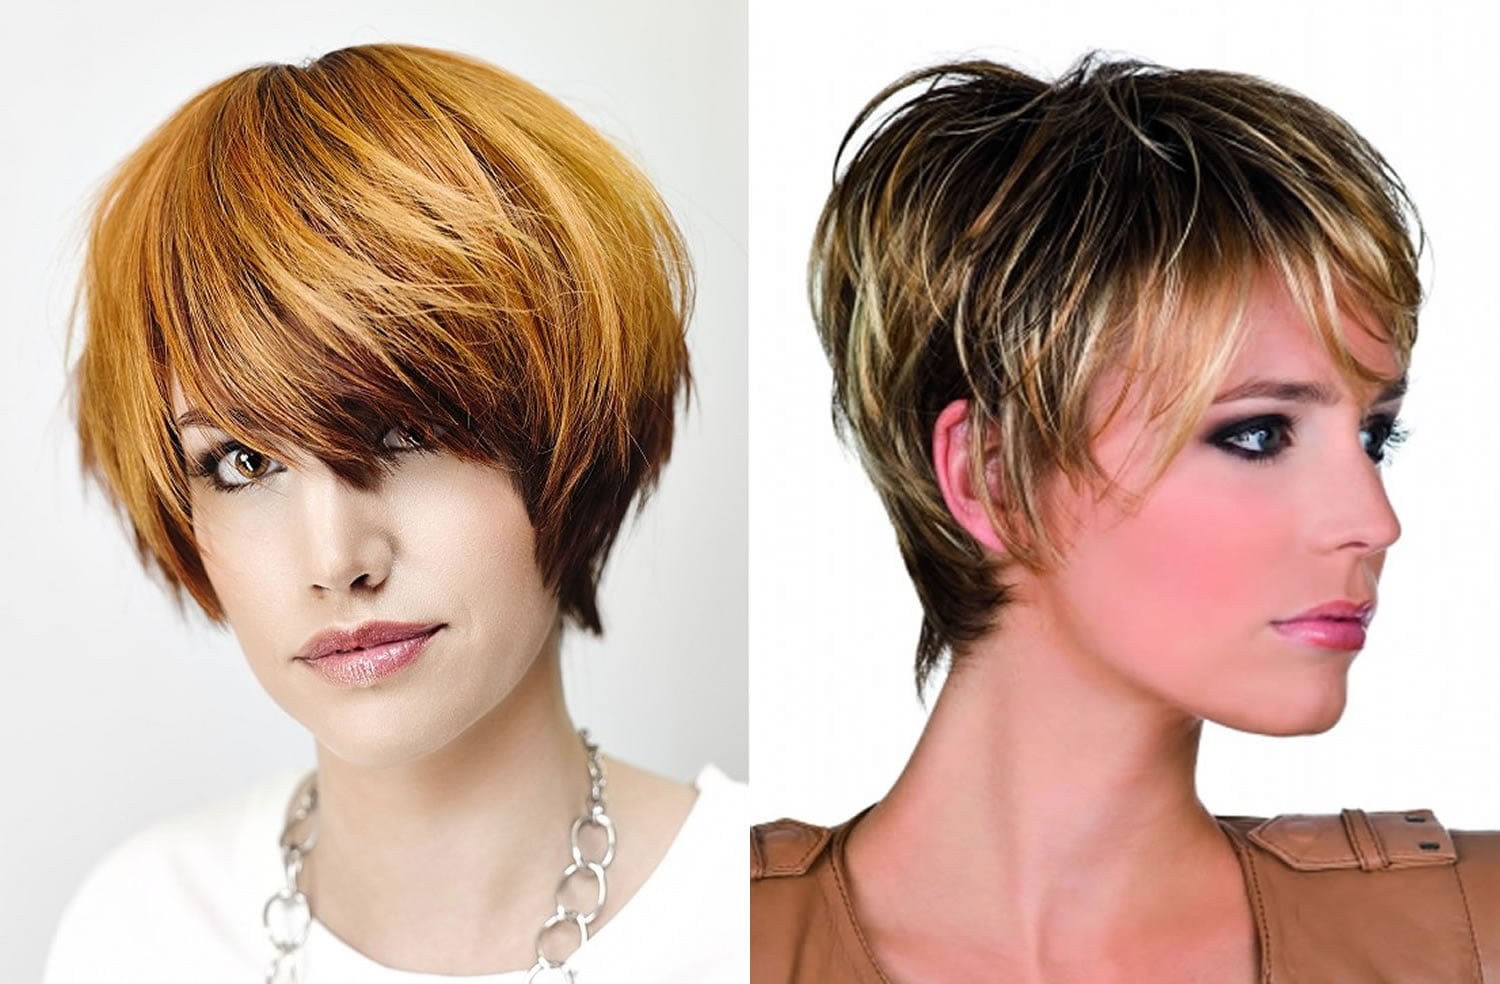 Hair Styles For Short Hair Woman